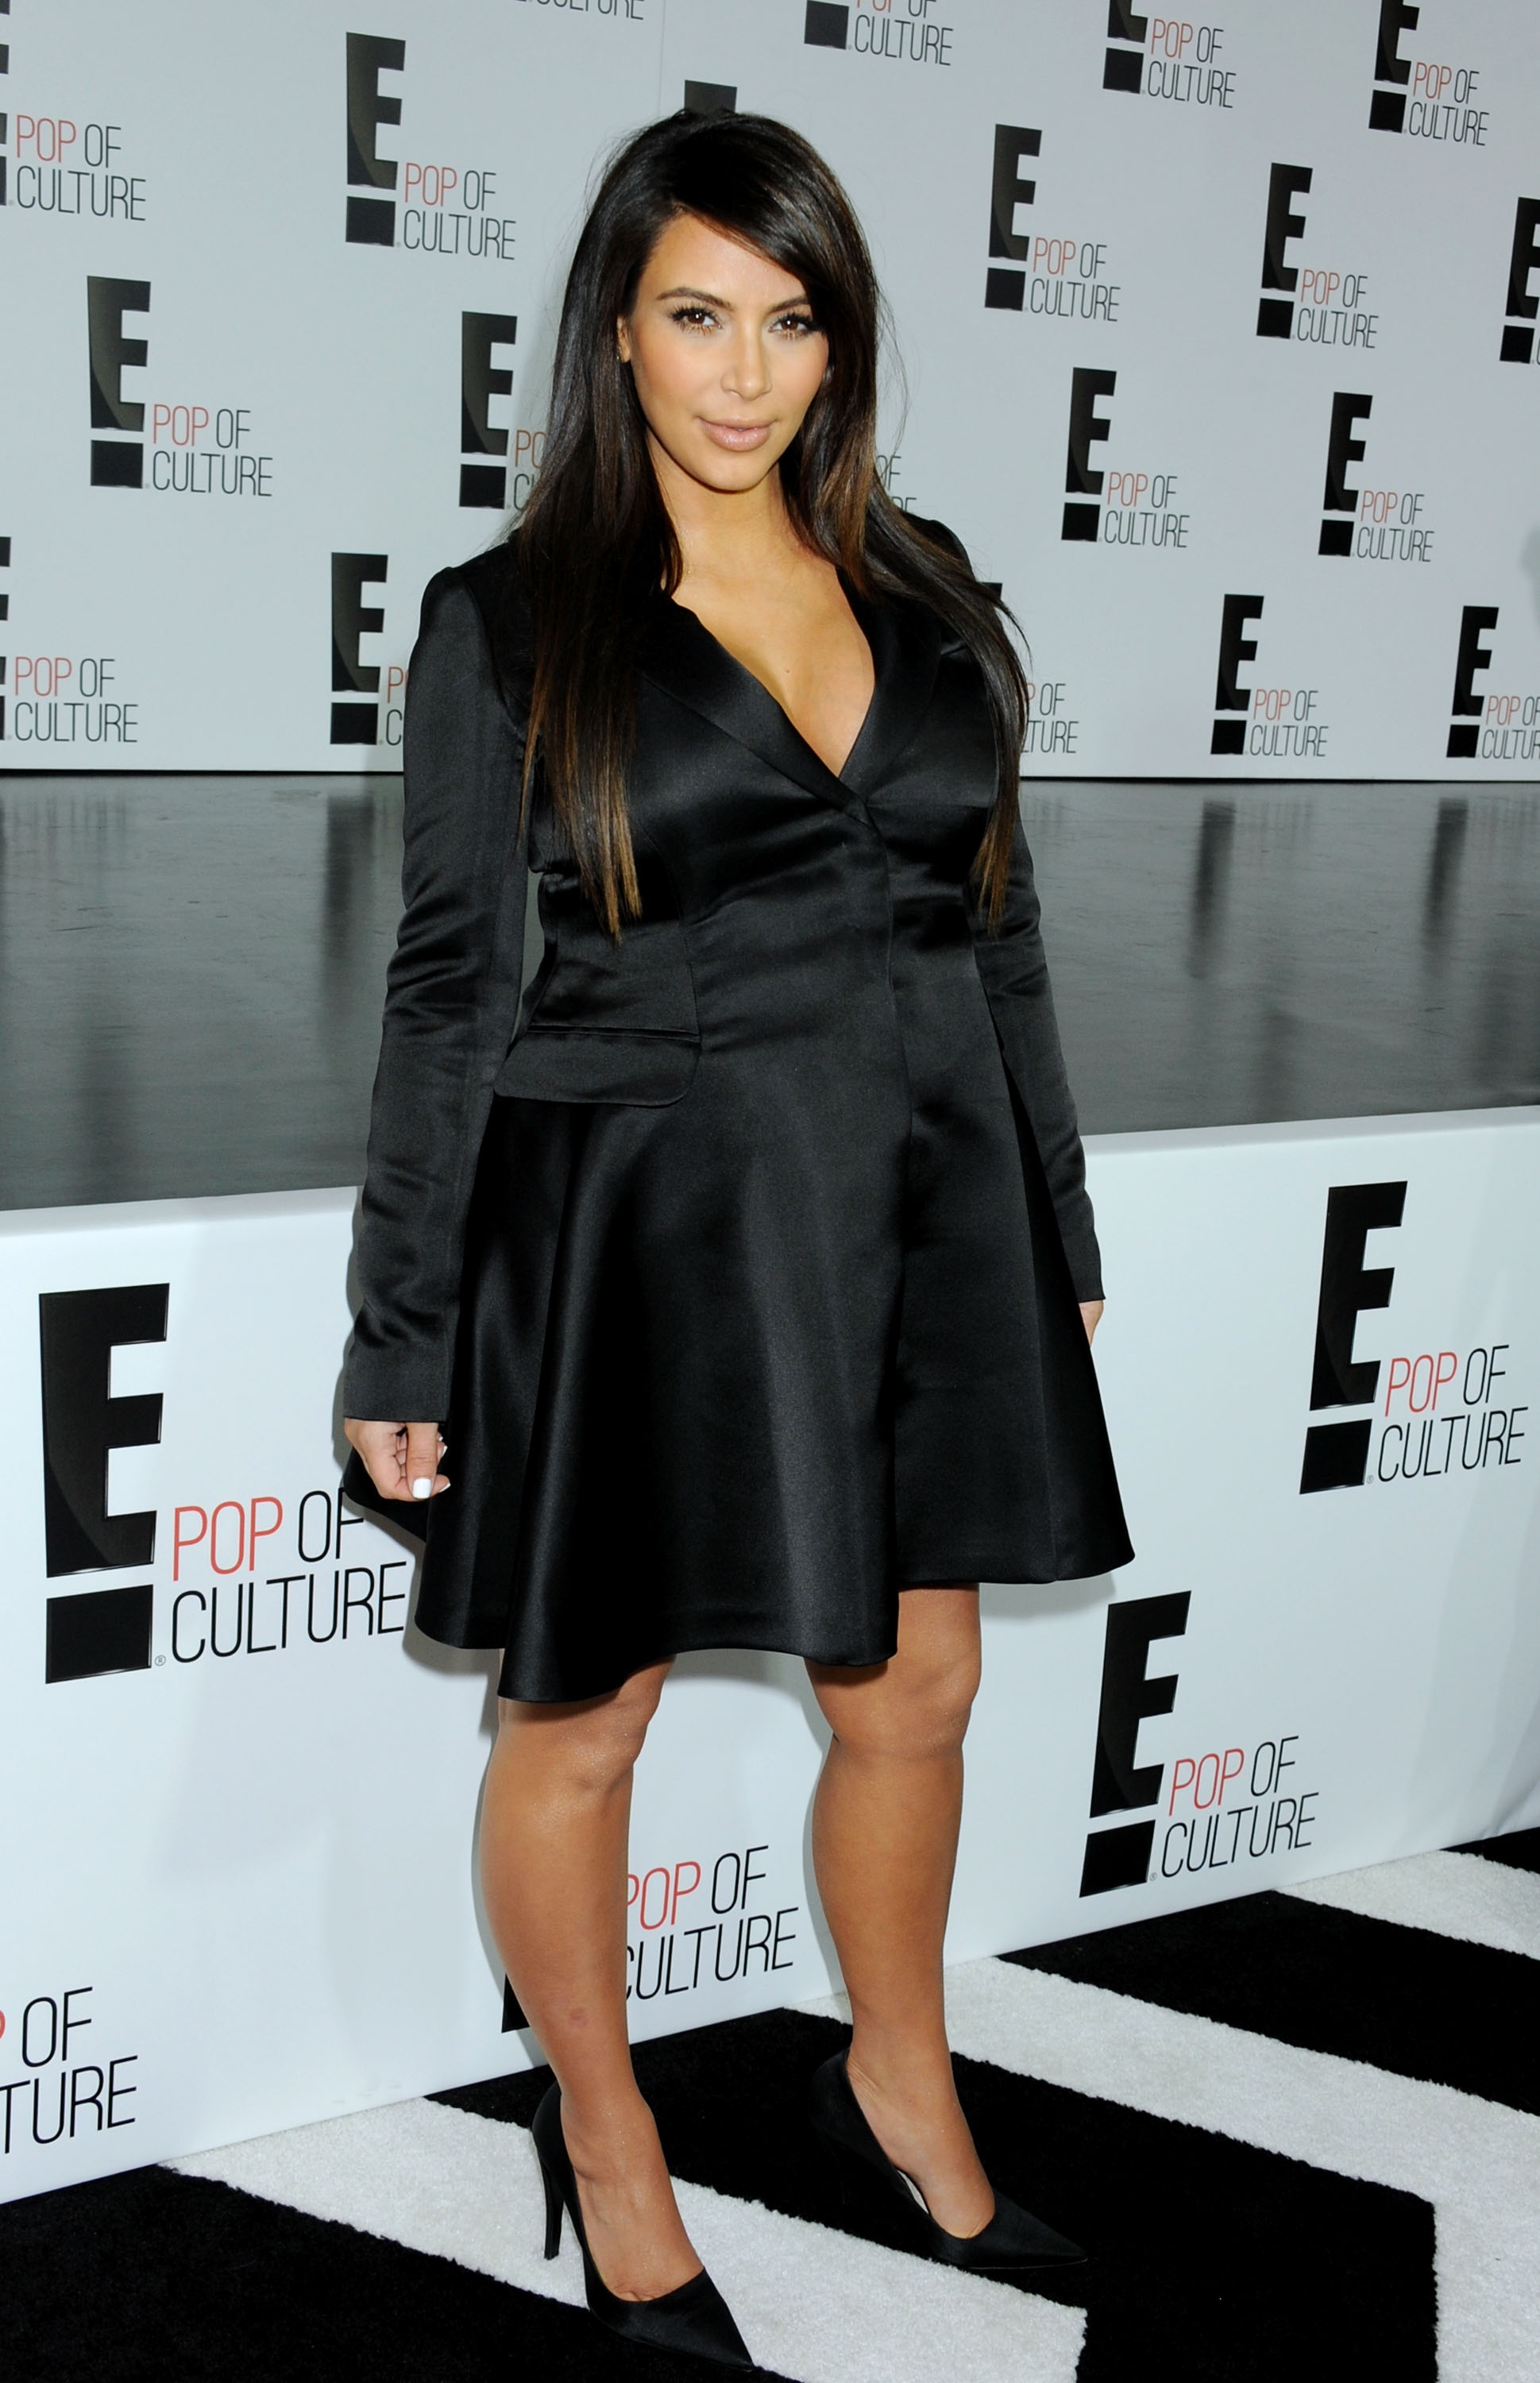 Kim Kardashian Sticks Tongue Out For Second Post-Baby Appearance